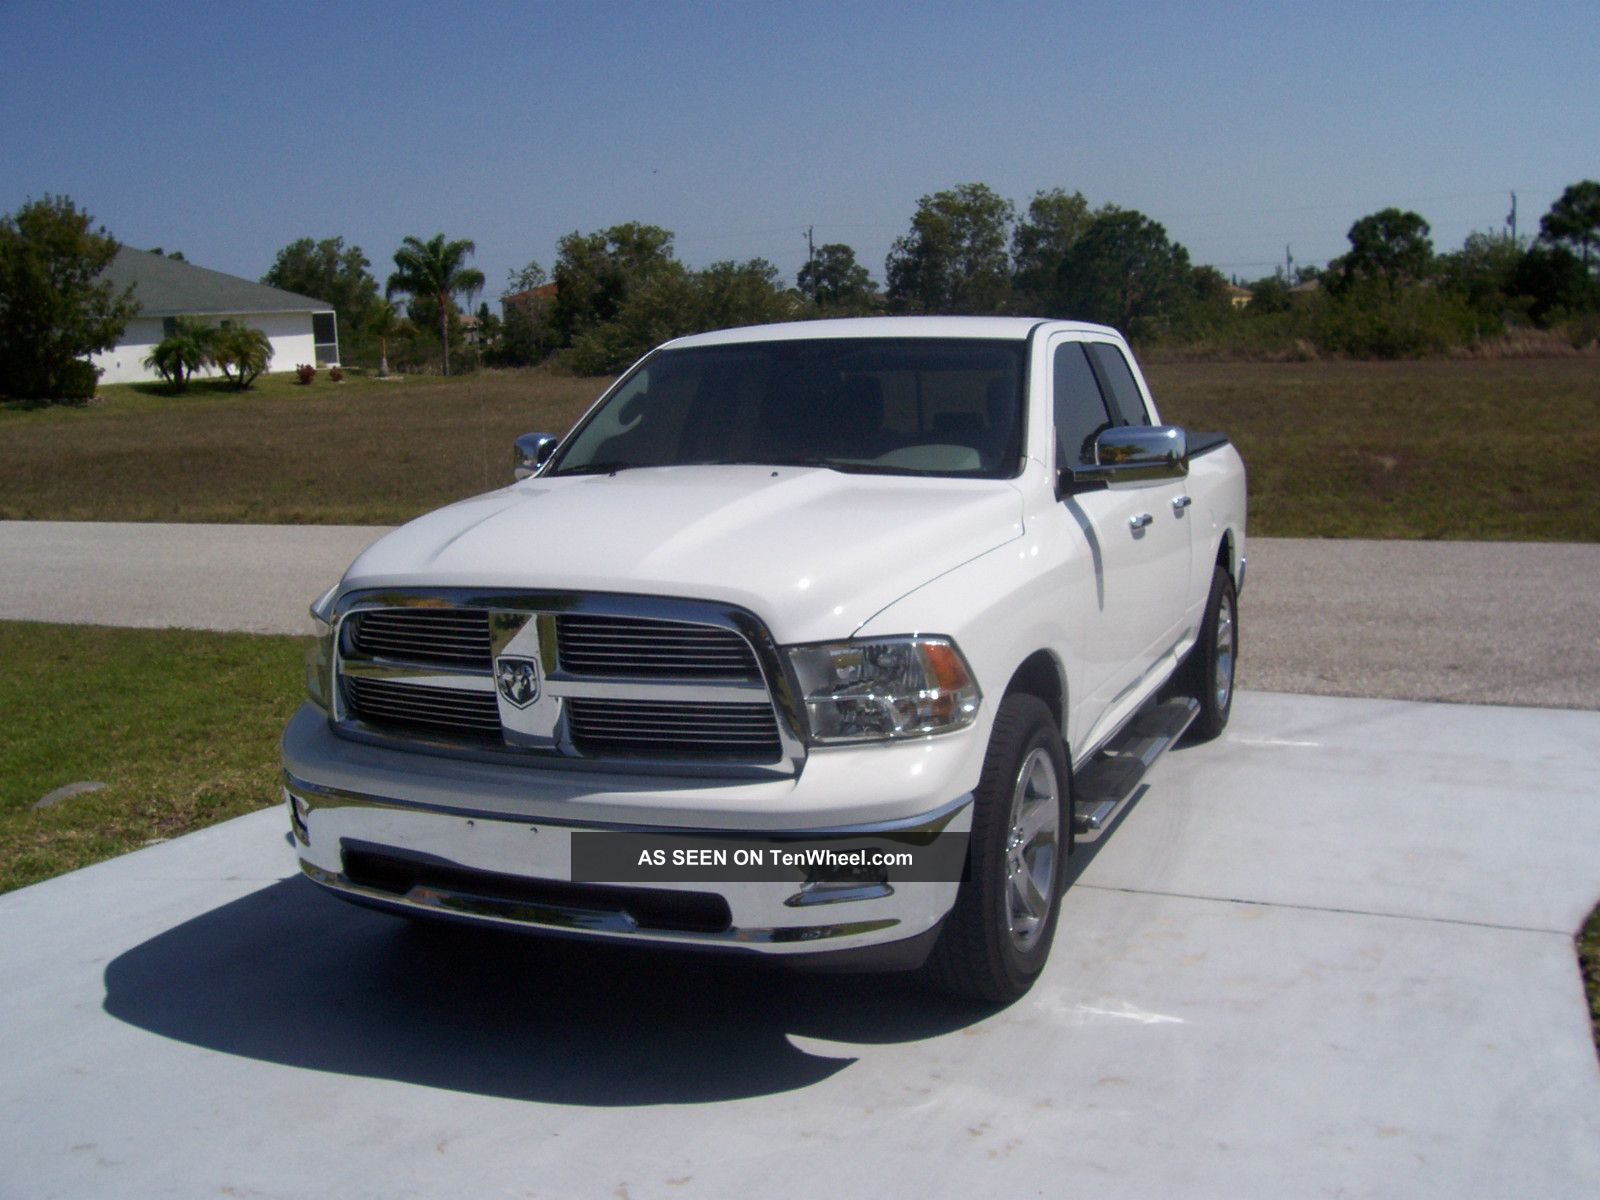 2012 dodge ram 1500 quad cab 4x4 slt big horn ram 1500 photo. Black Bedroom Furniture Sets. Home Design Ideas